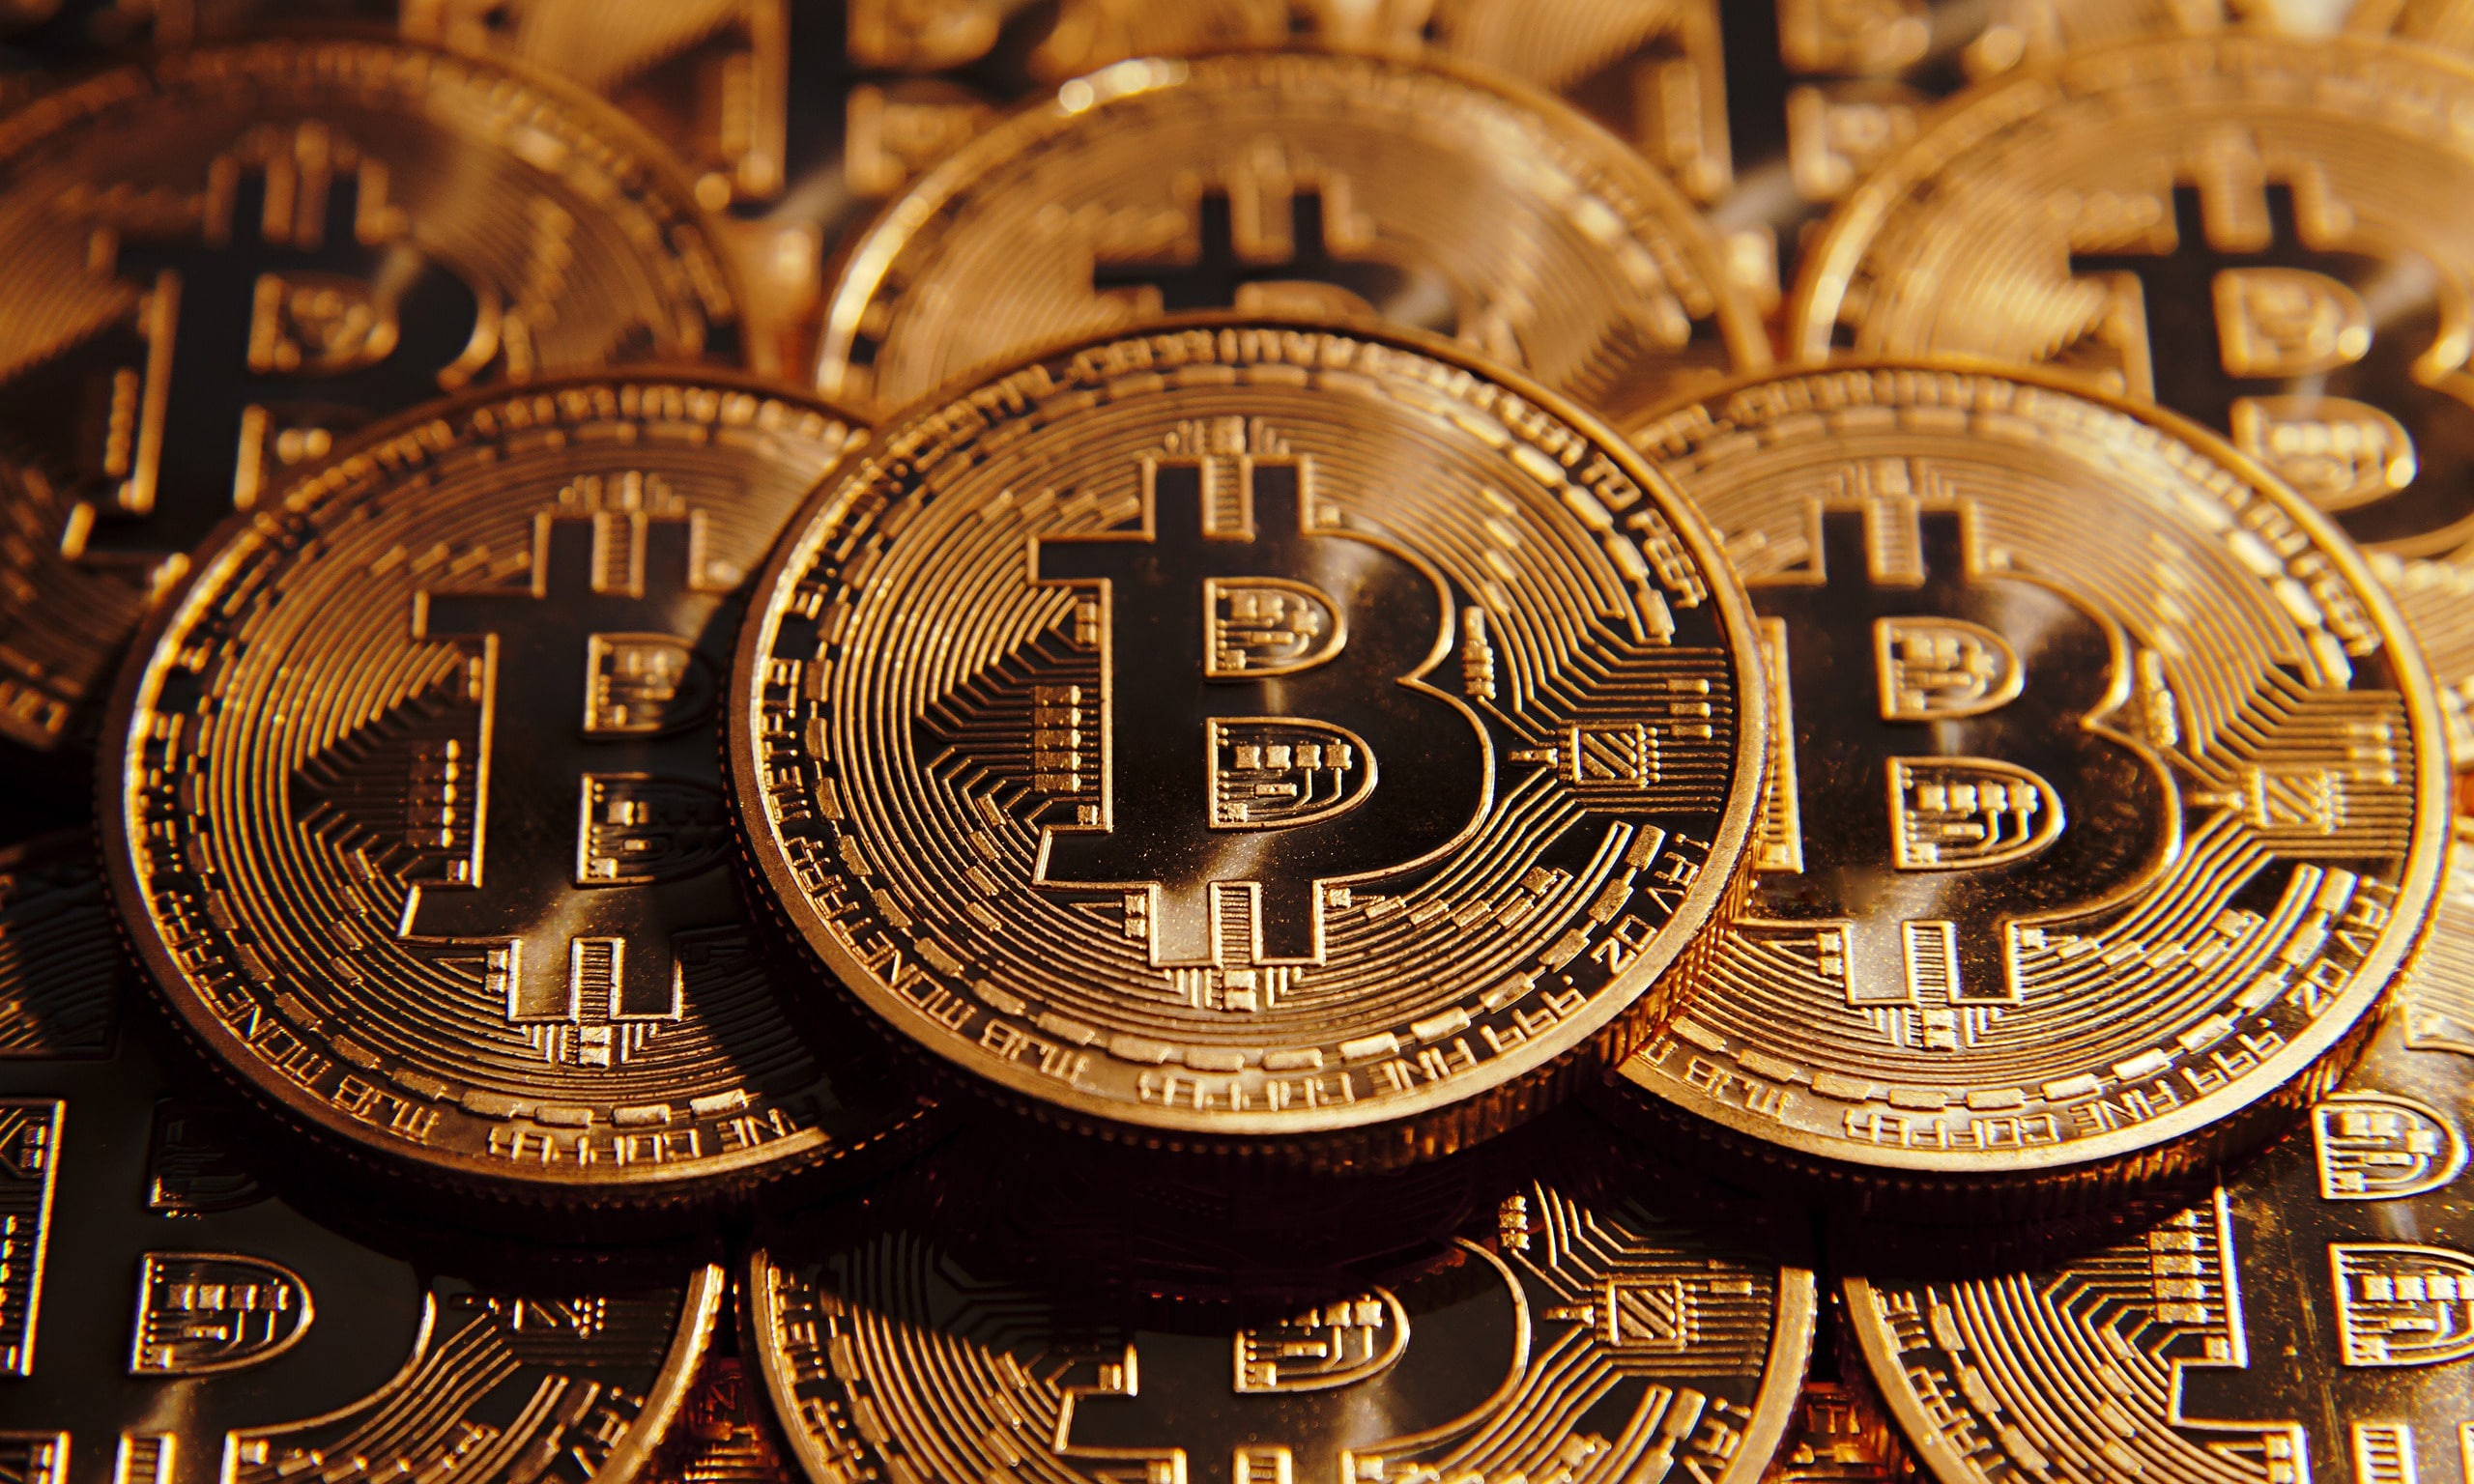 Pomp goes on campaigning mainstream regarding Bitcoins